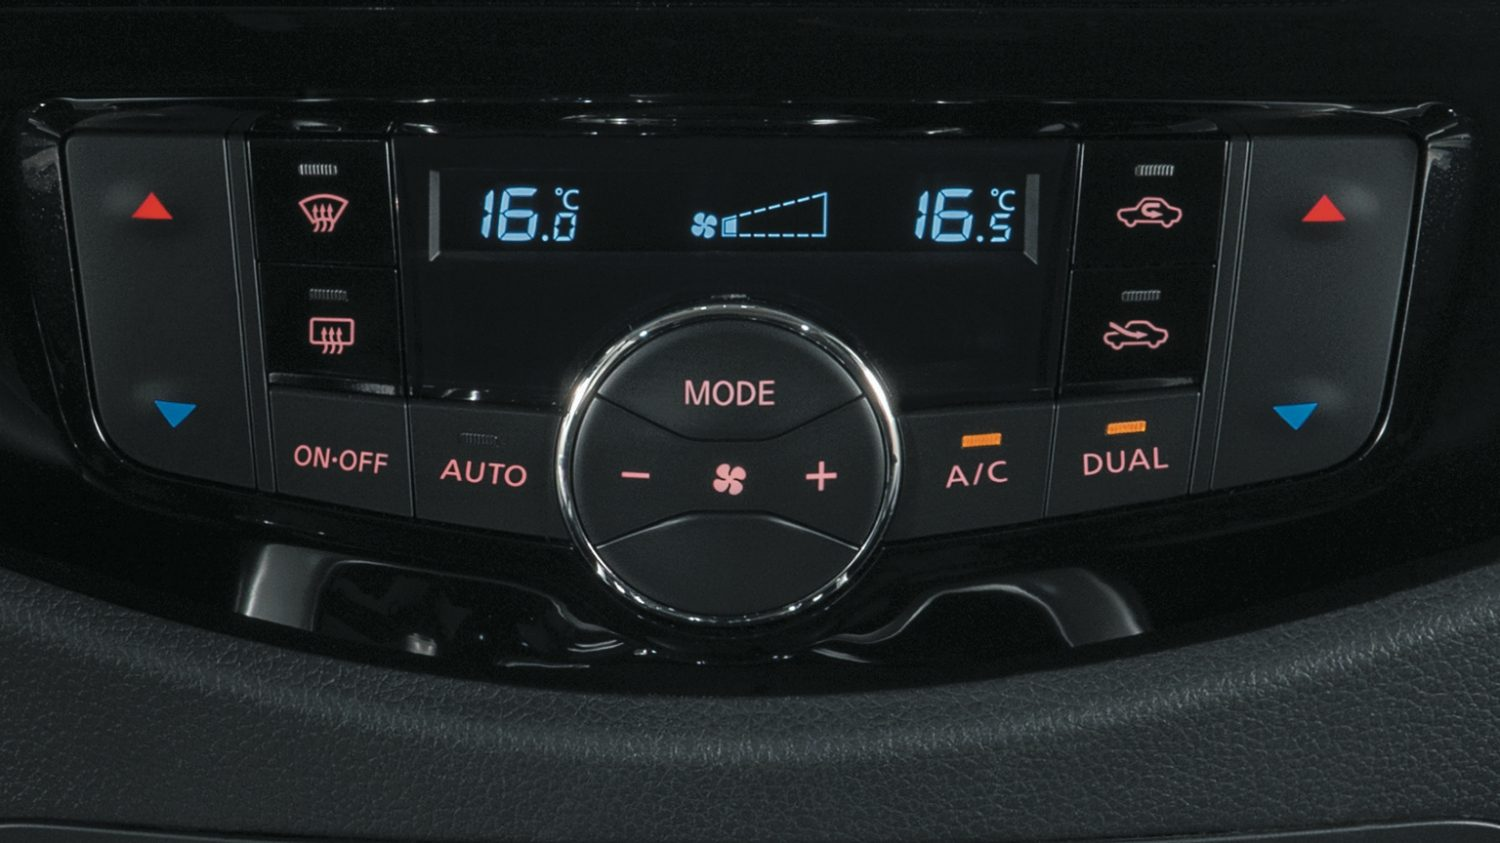 Navara | Nissan | Automatic air conditioning and dual zone climate control